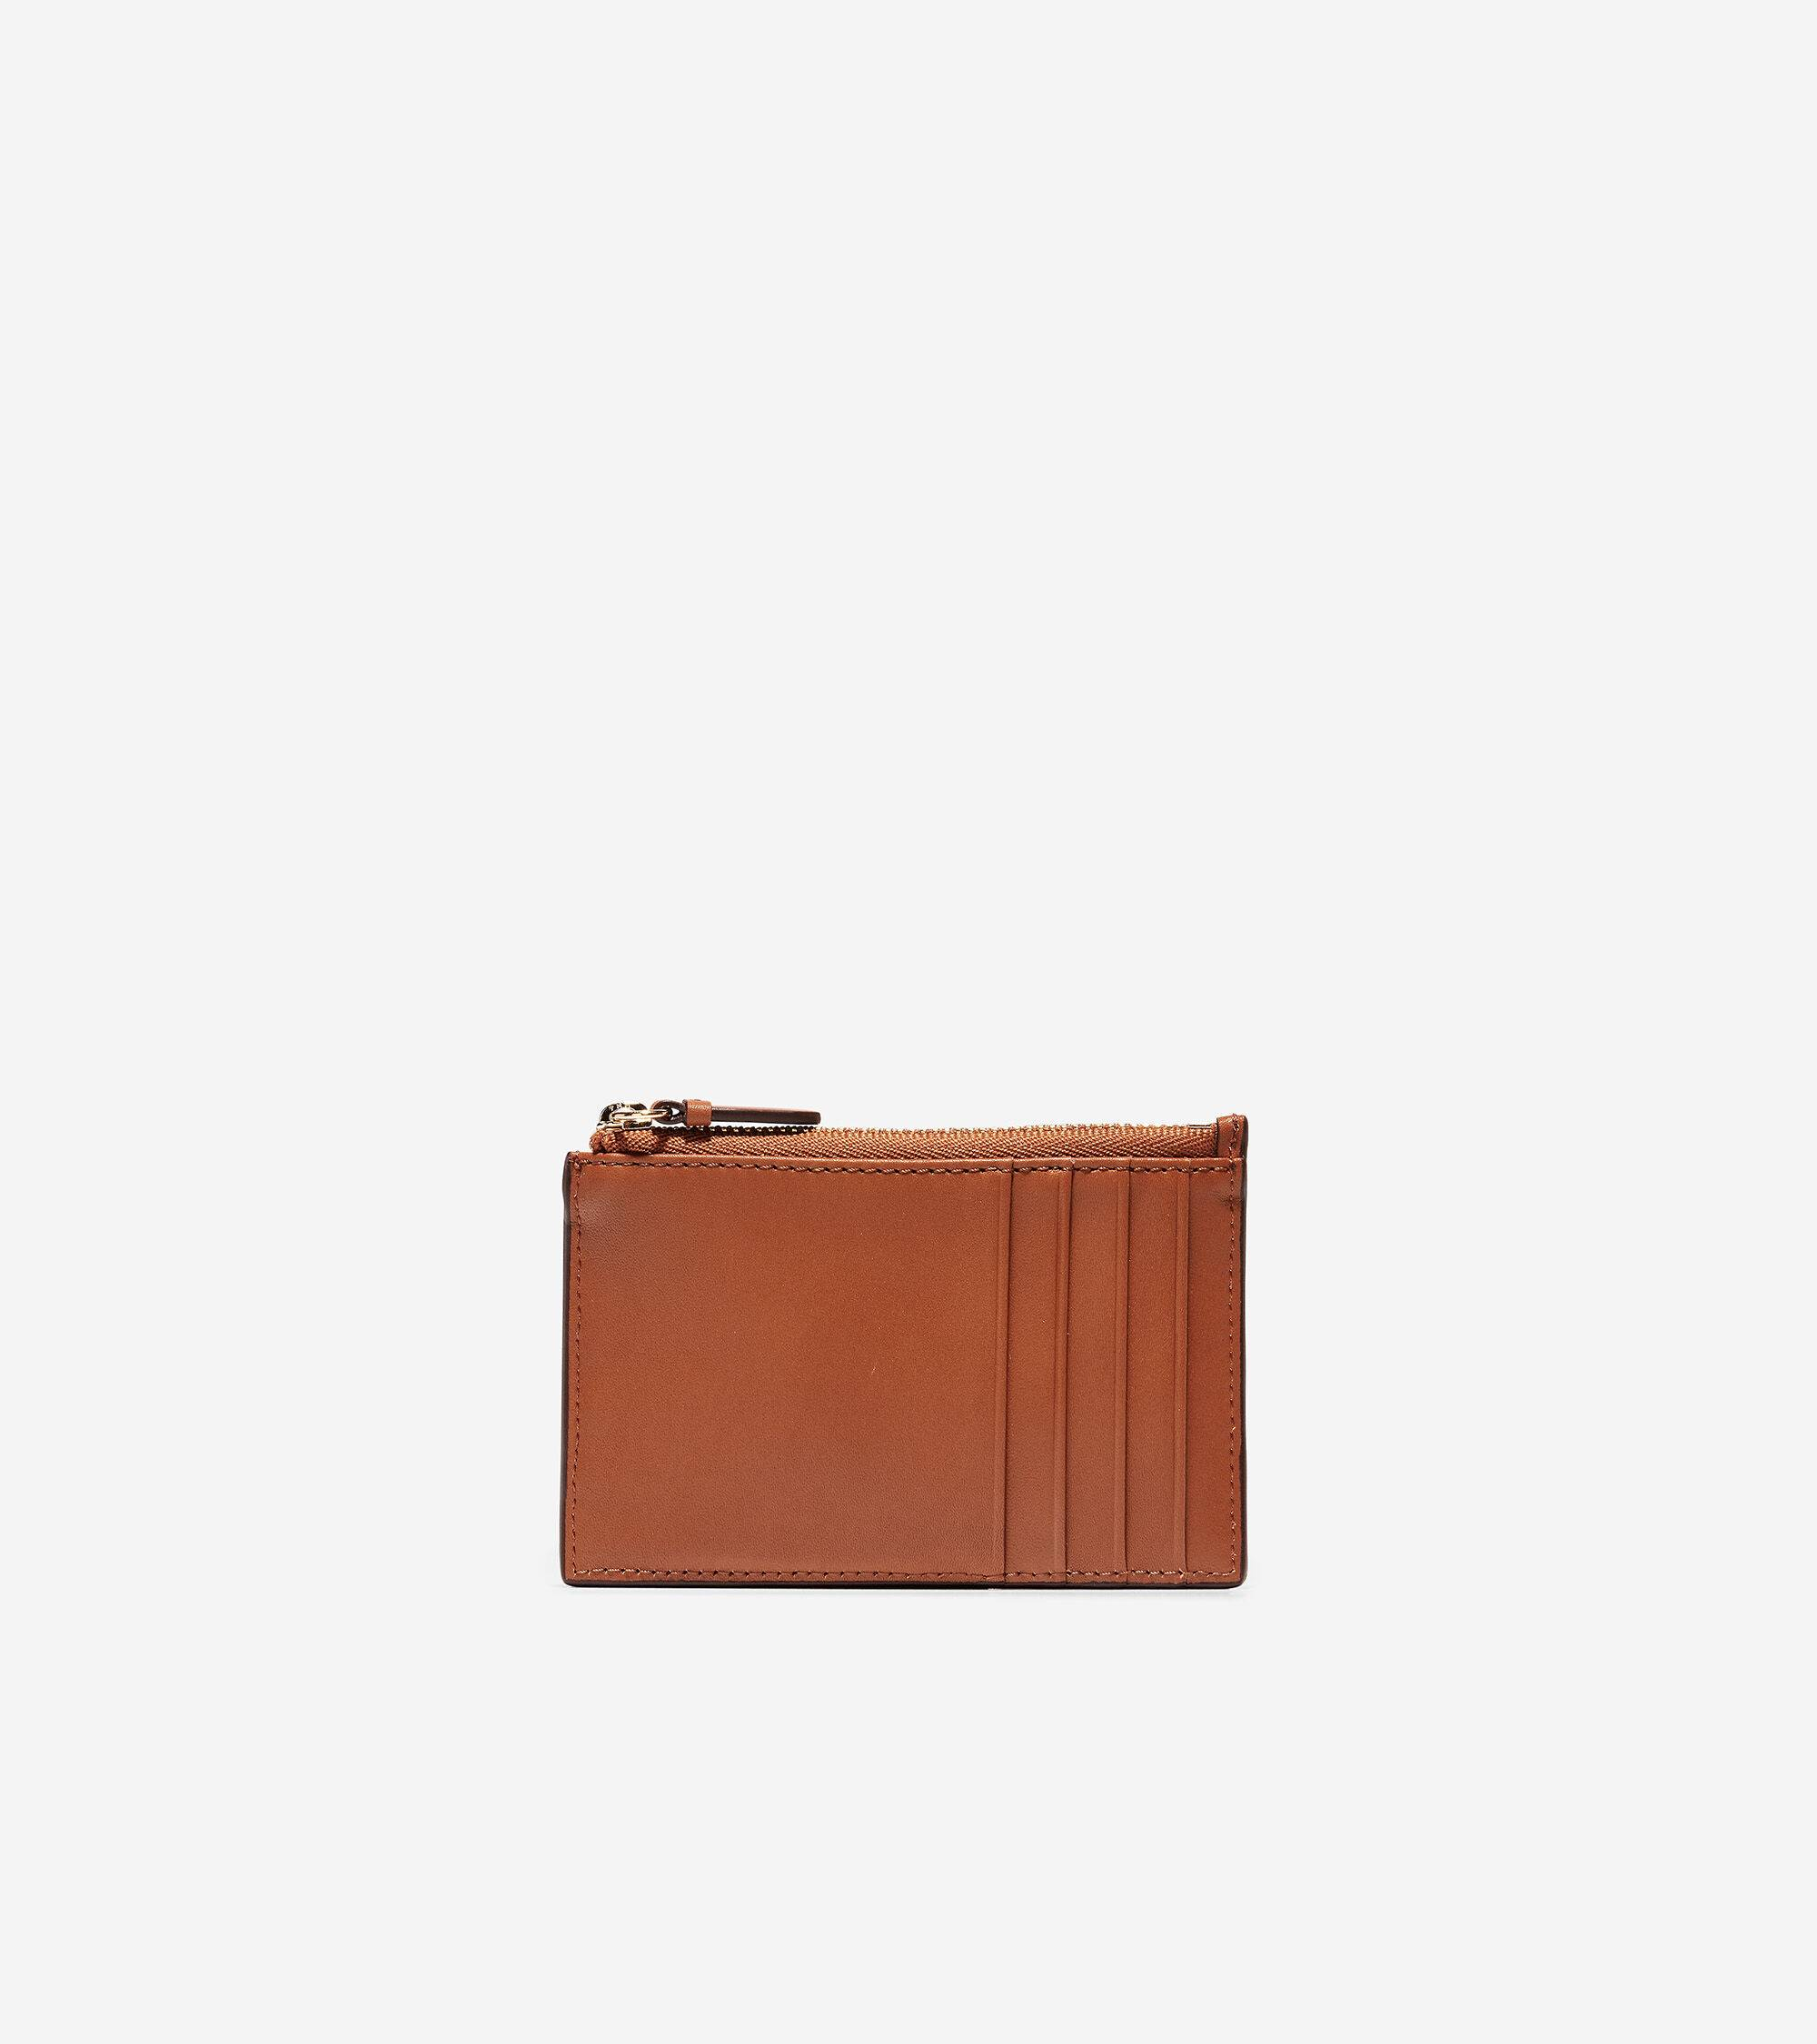 Cole Haan GRANDSERIES Card Case with Zip - BROWN - Size: OSFA